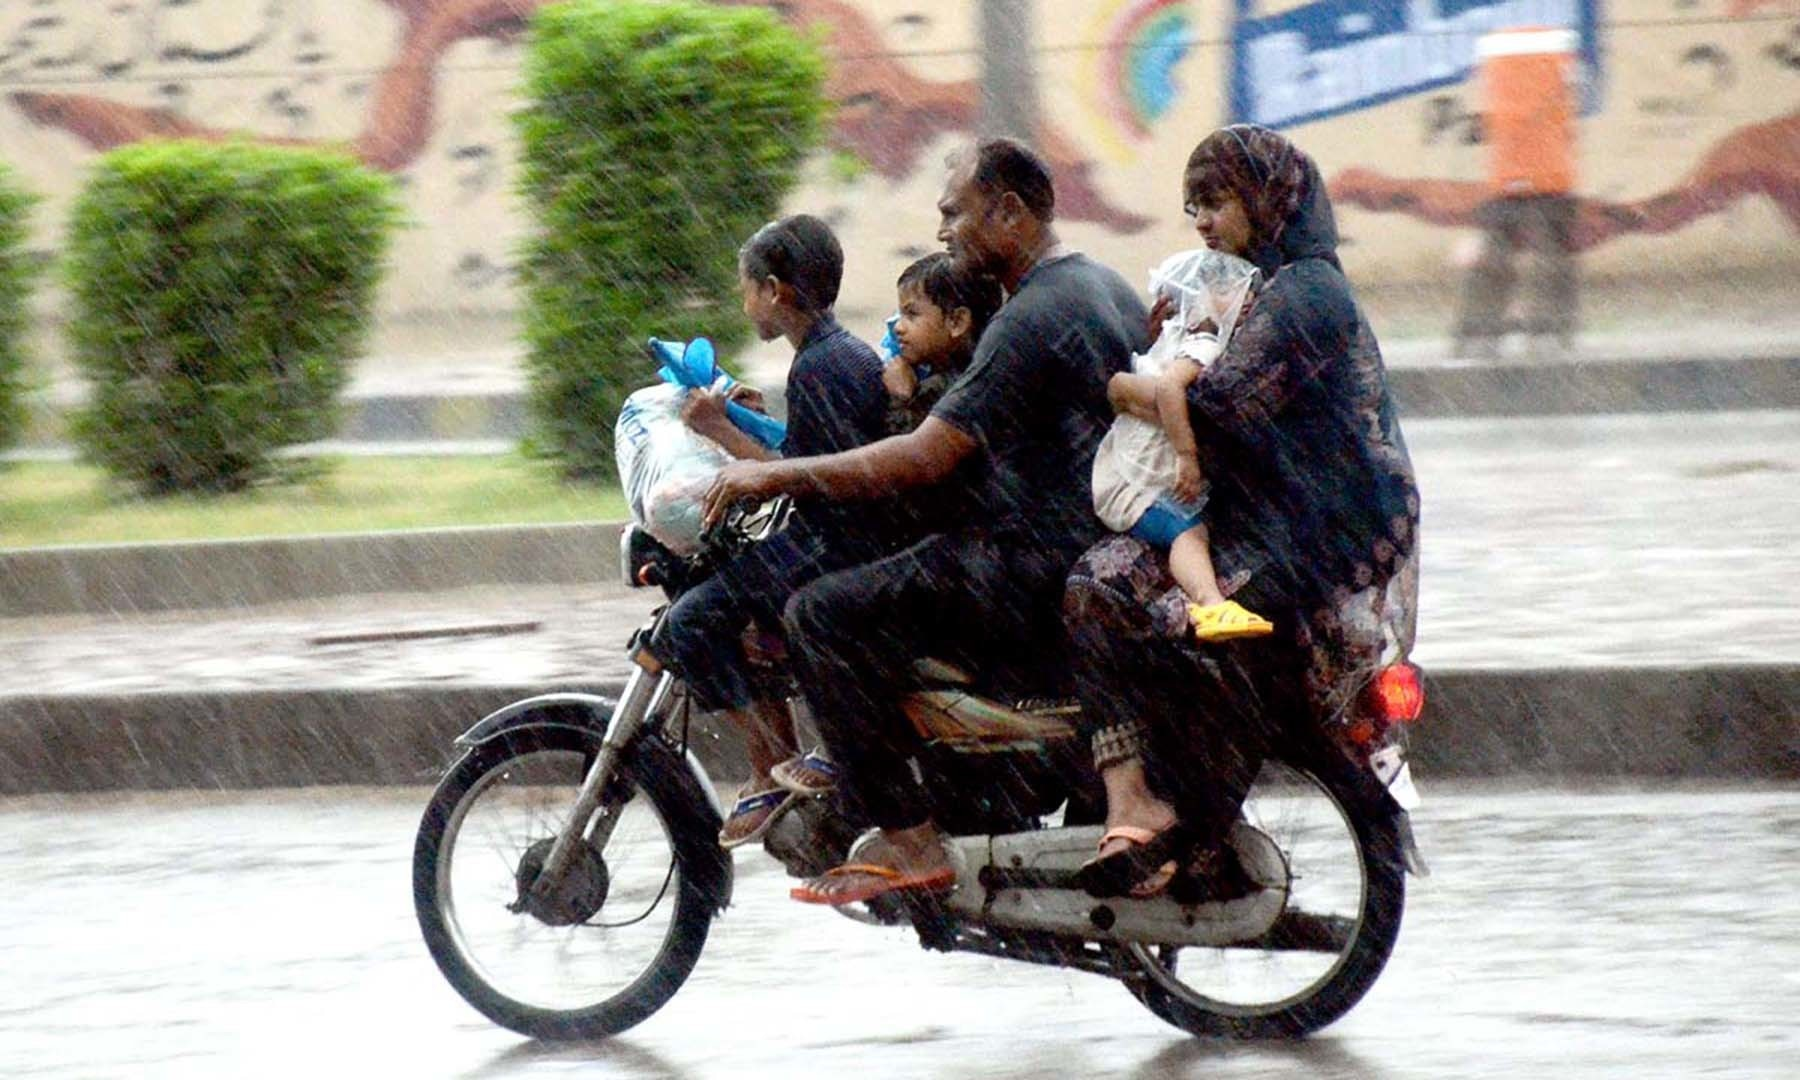 A motorcyclist is pictured along with his family members on a street in Karachi on Monday. — APP